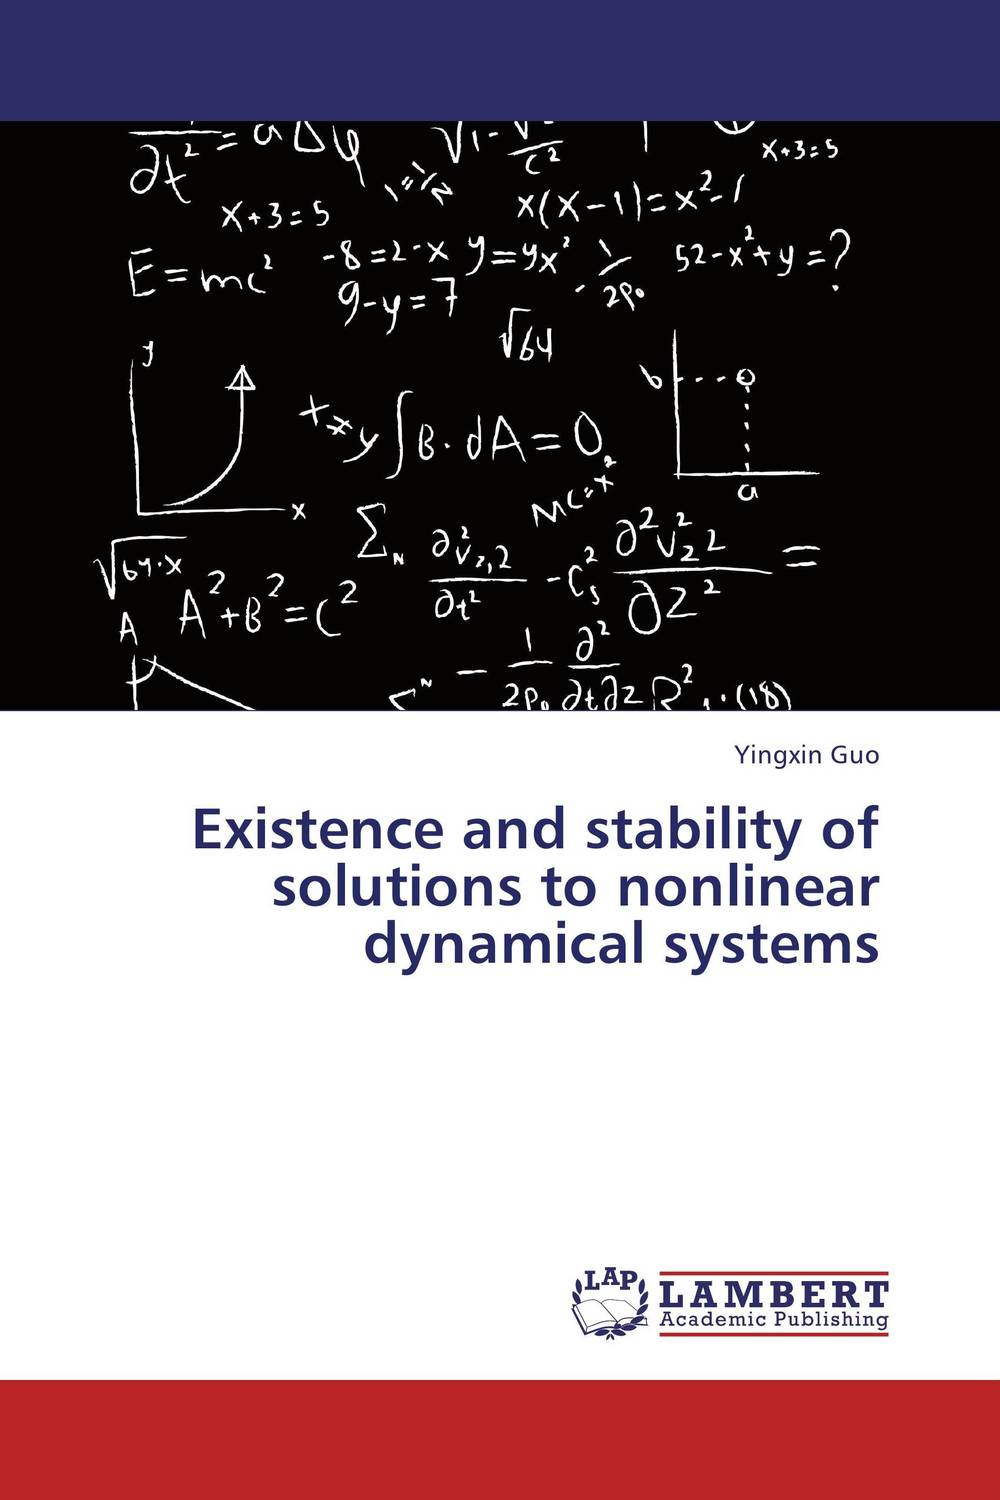 Existence and stability of solutions to nonlinear dynamical systems symmetries and exact solutions for nonlinear systems